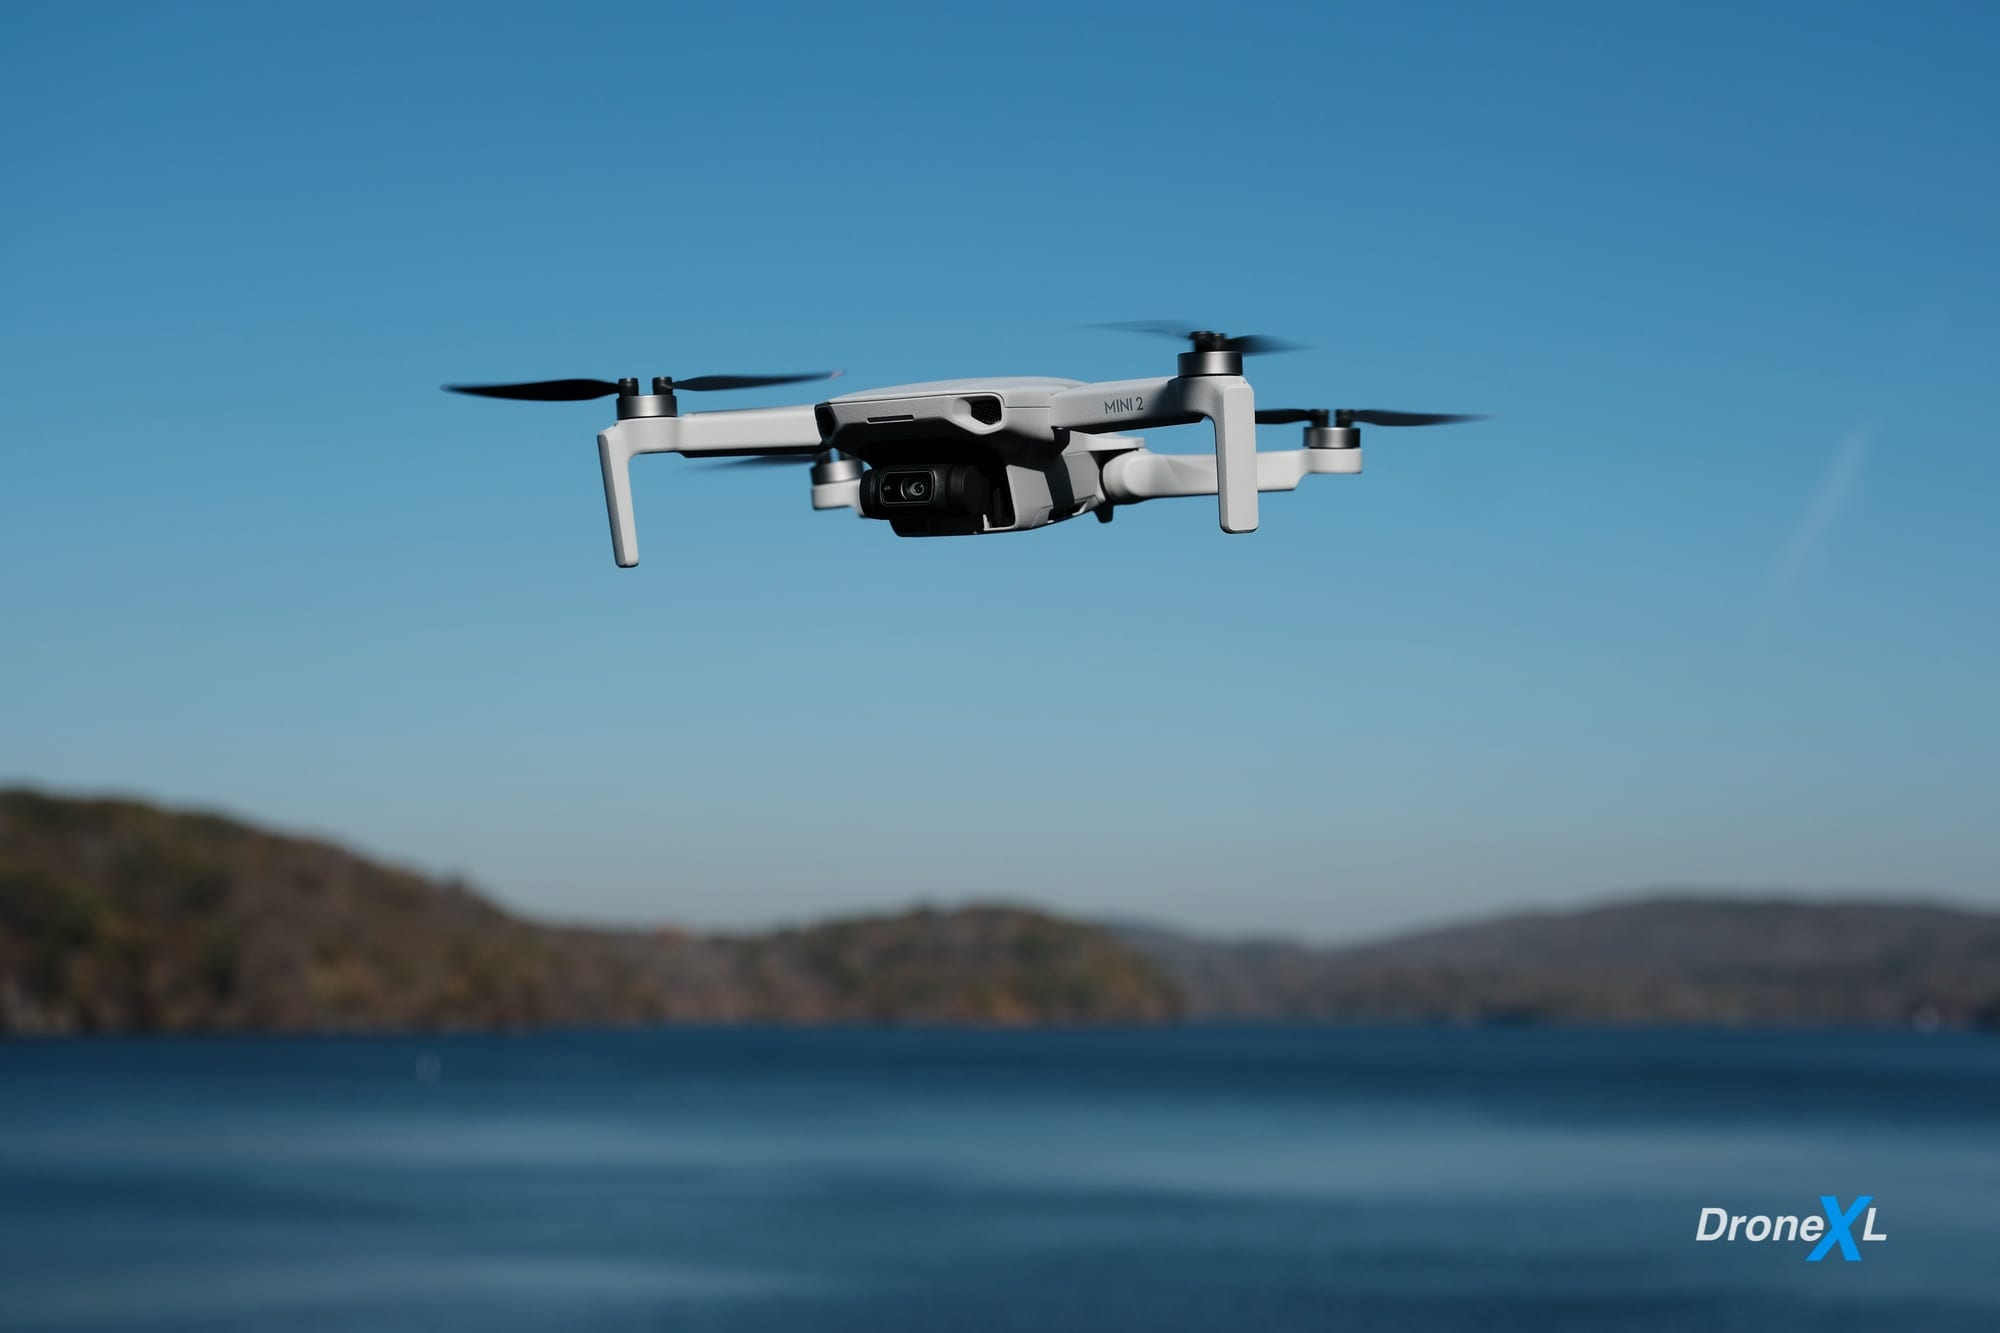 Drones might deliver $15B to Australian GDP in over next 20 years